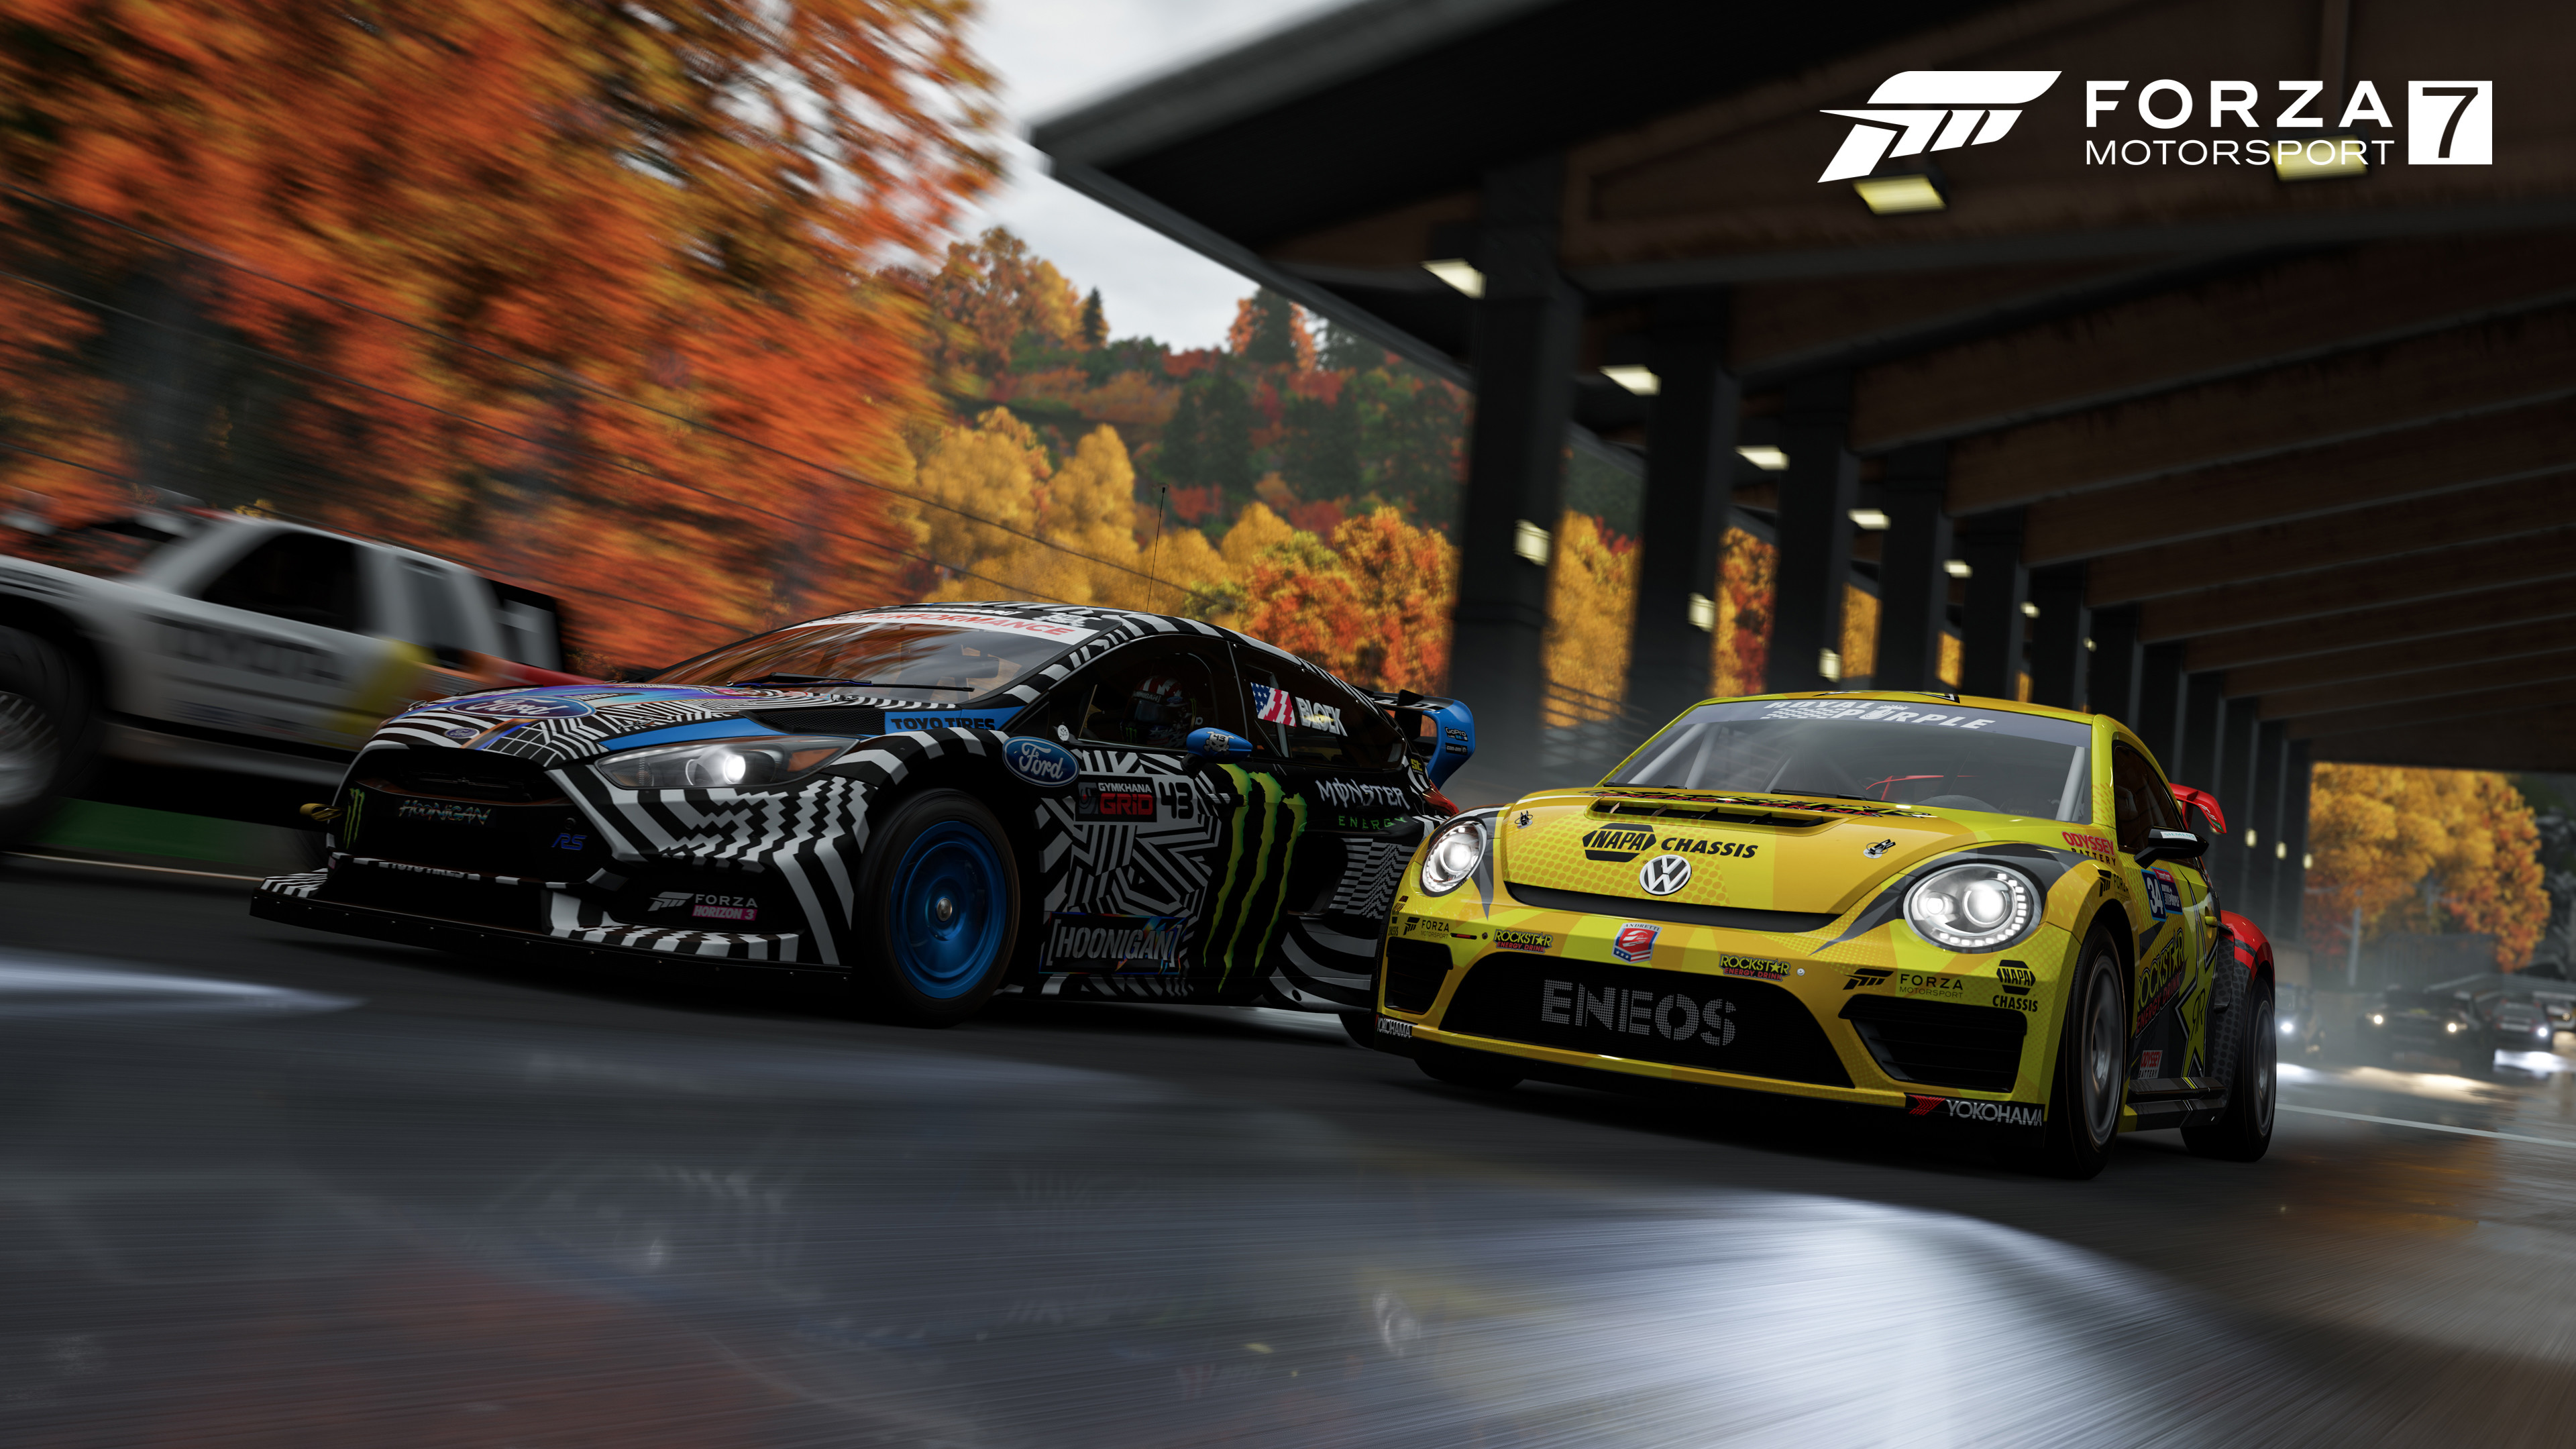 Forza Motorsport 7 review: One racing game to rule them all - Neowin